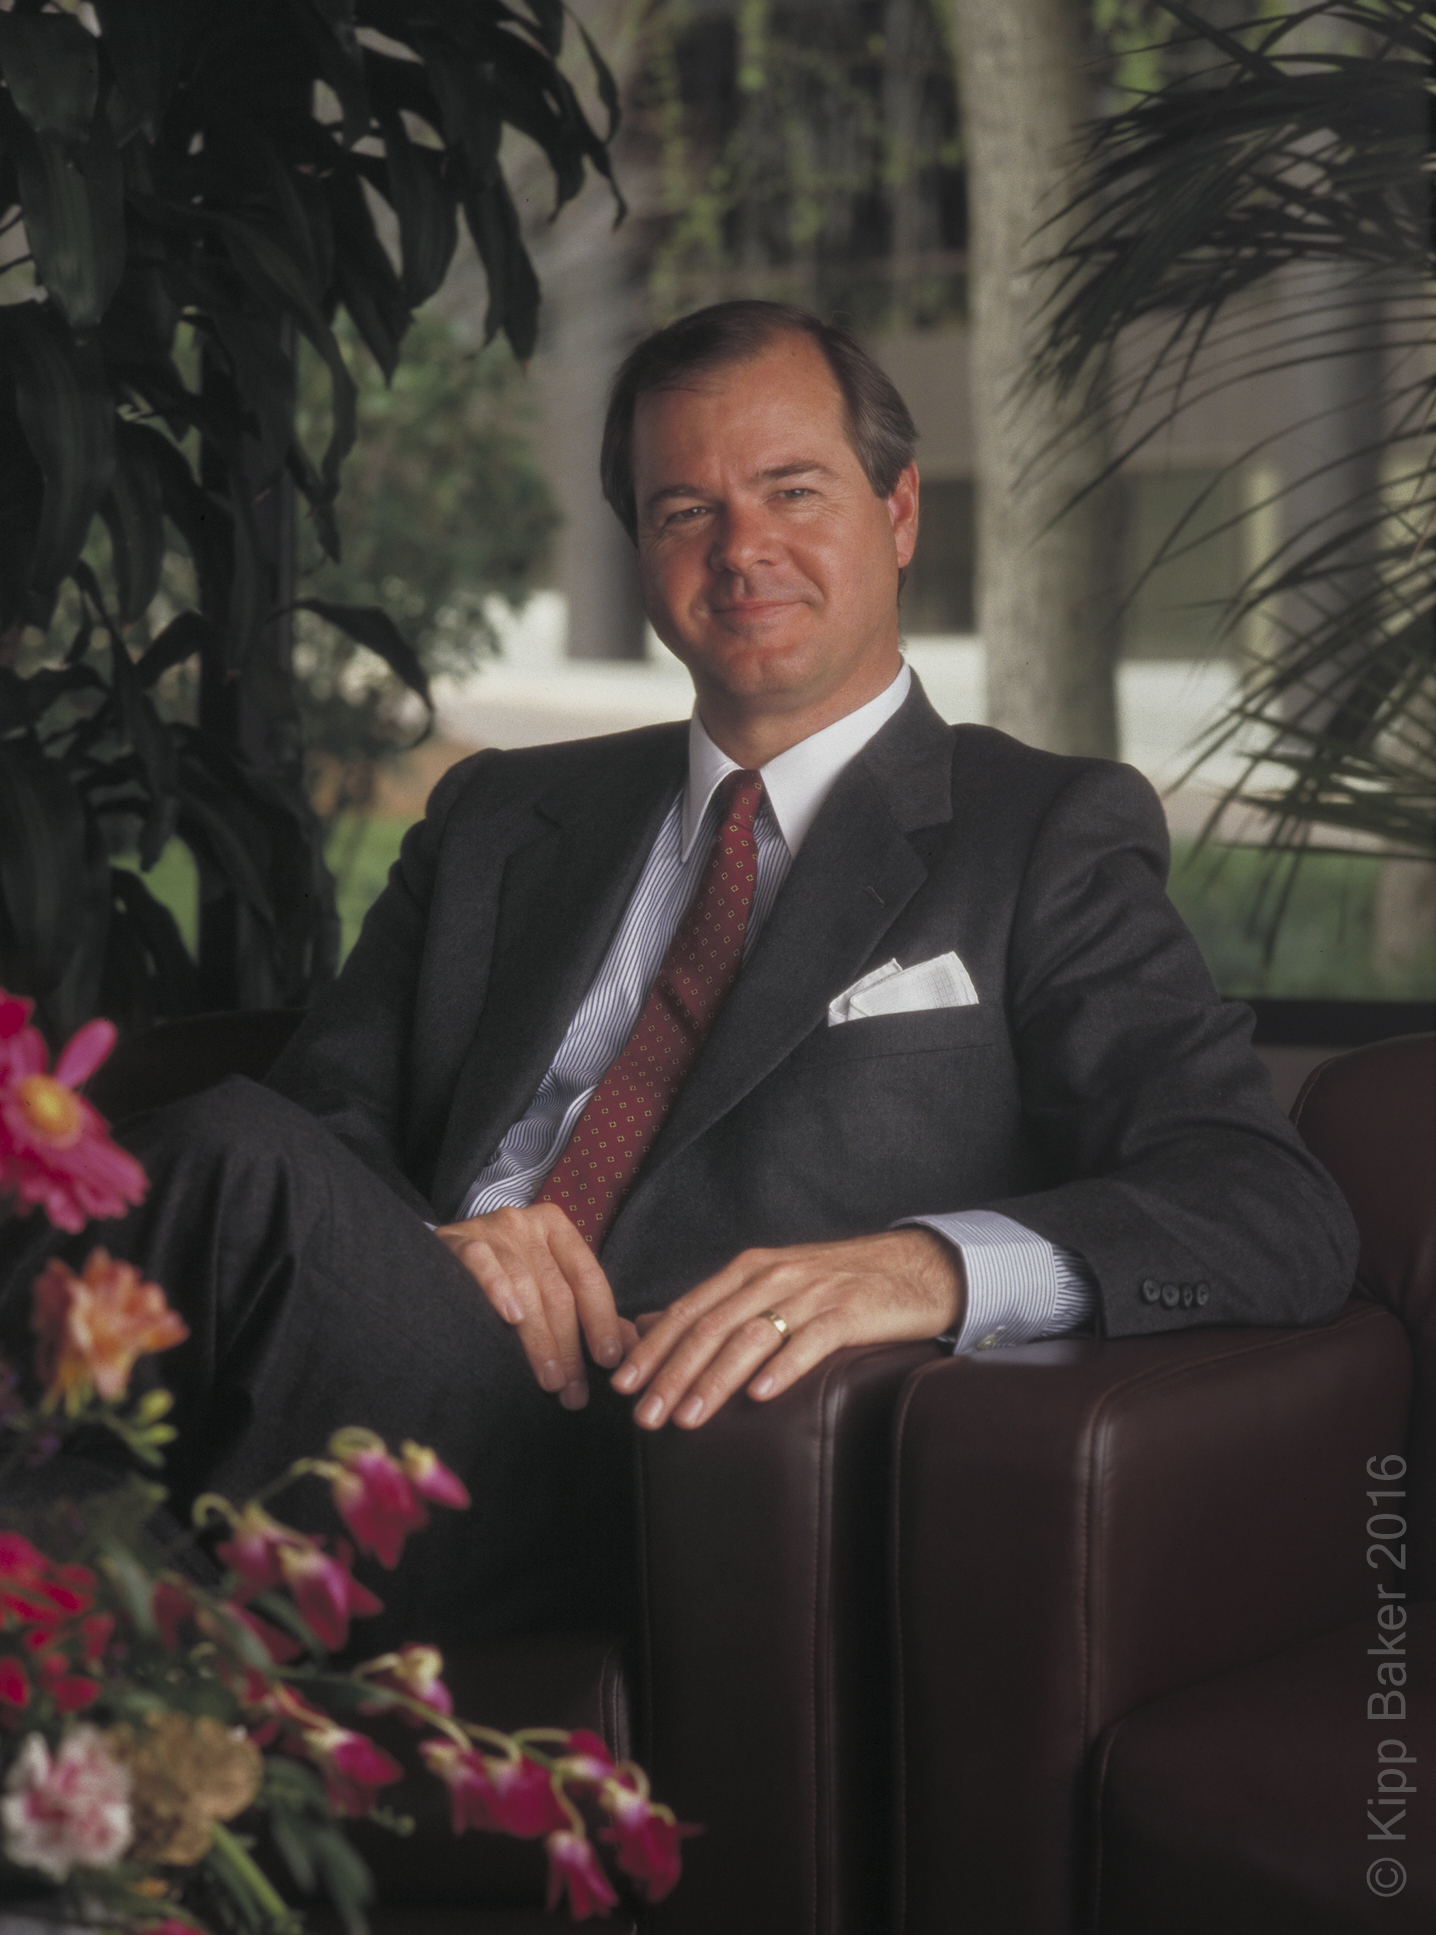 Robert Grout, managing partner for Troutman, Sanders, Lockerman & Ashmore, one of the original tenants of Ravinia III in Atlanta, Georgia, and designed by architect Kevin Roche. Image used in marketing presentation. Copyright © Kipp Baker, All rights reserved.